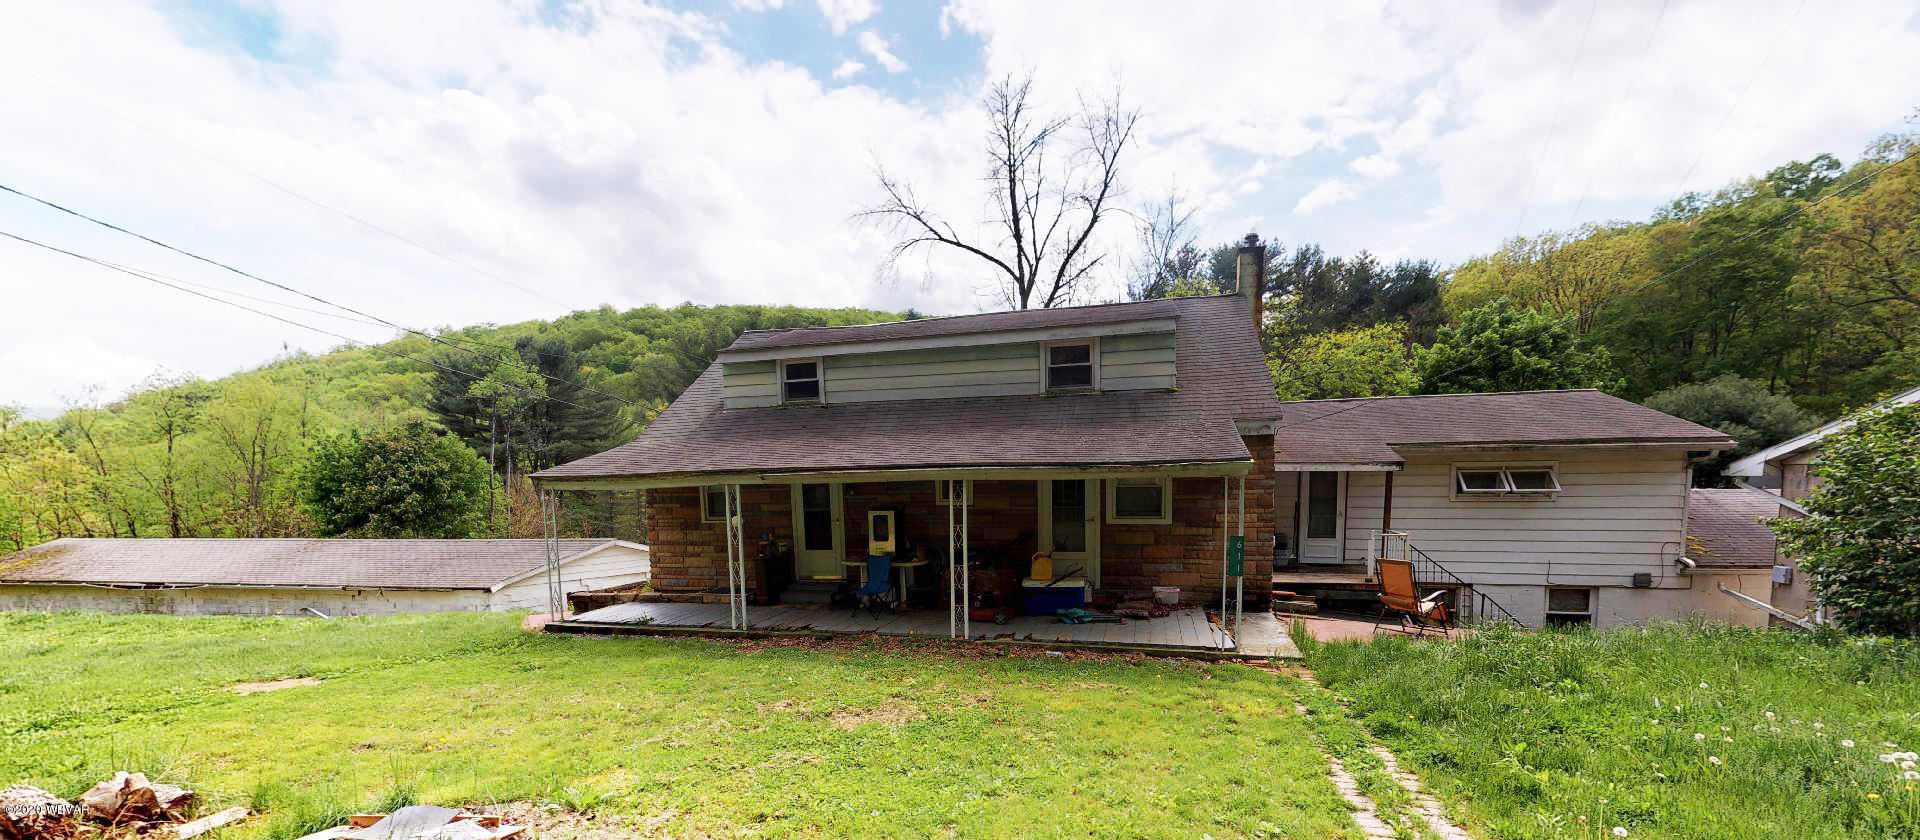 611 NORTHWAY ROAD, Linden, PA 17744 - #: WB-89433